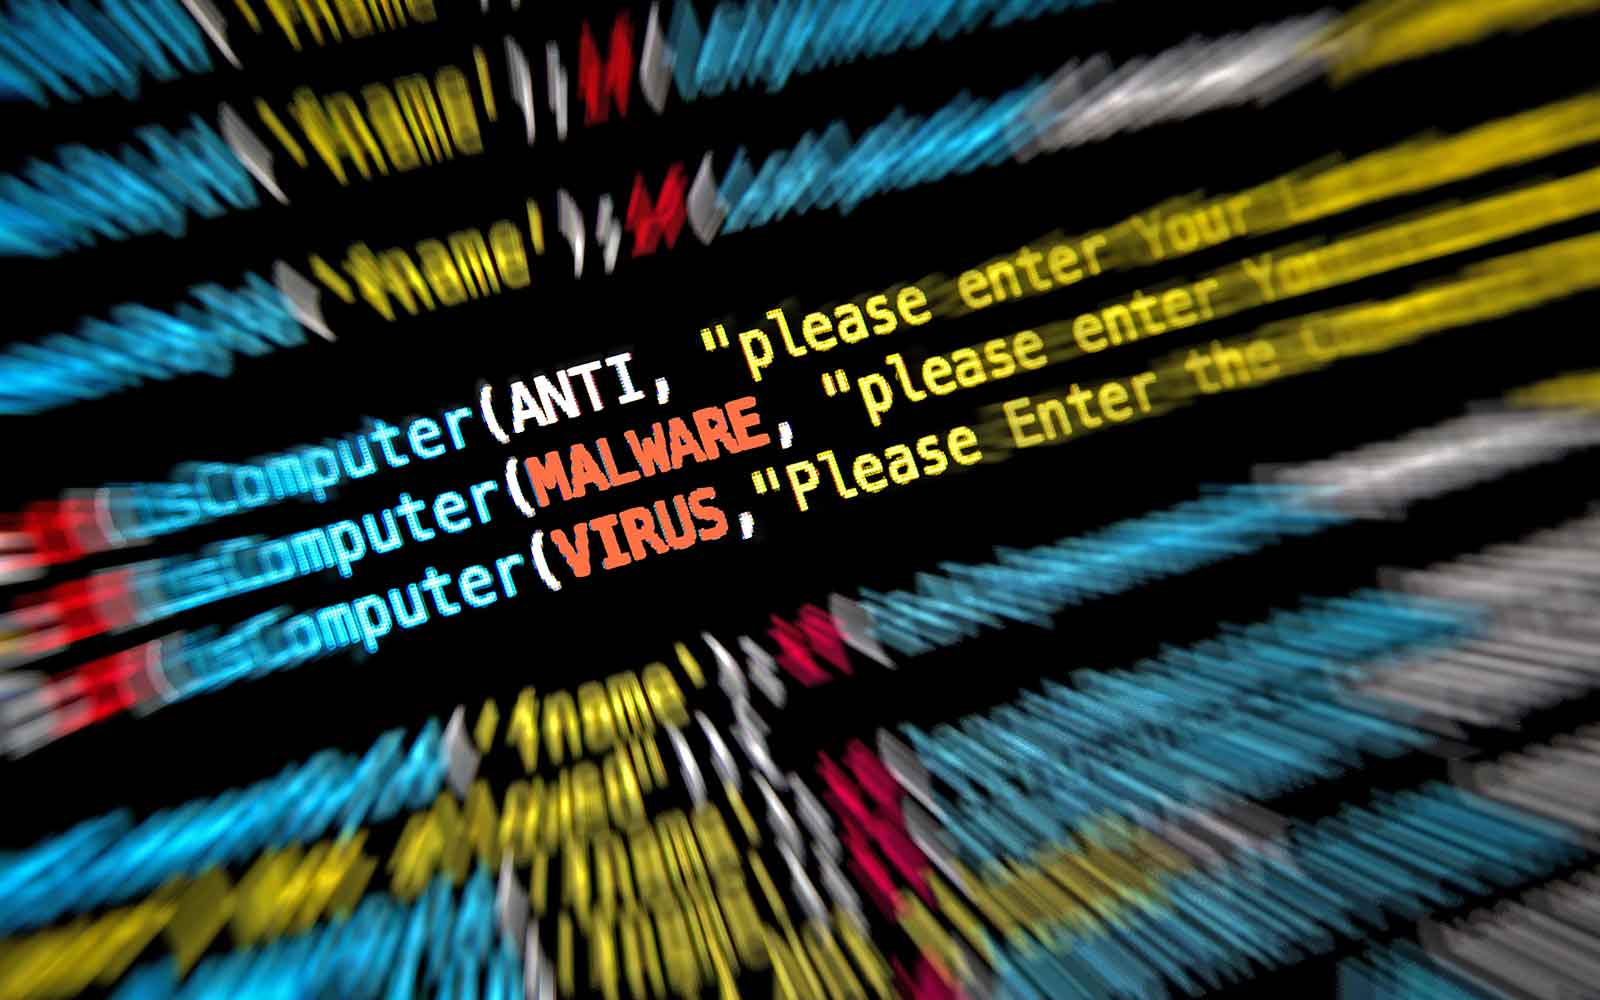 malware vs virus feature image showing a screen of code with those two words highighted